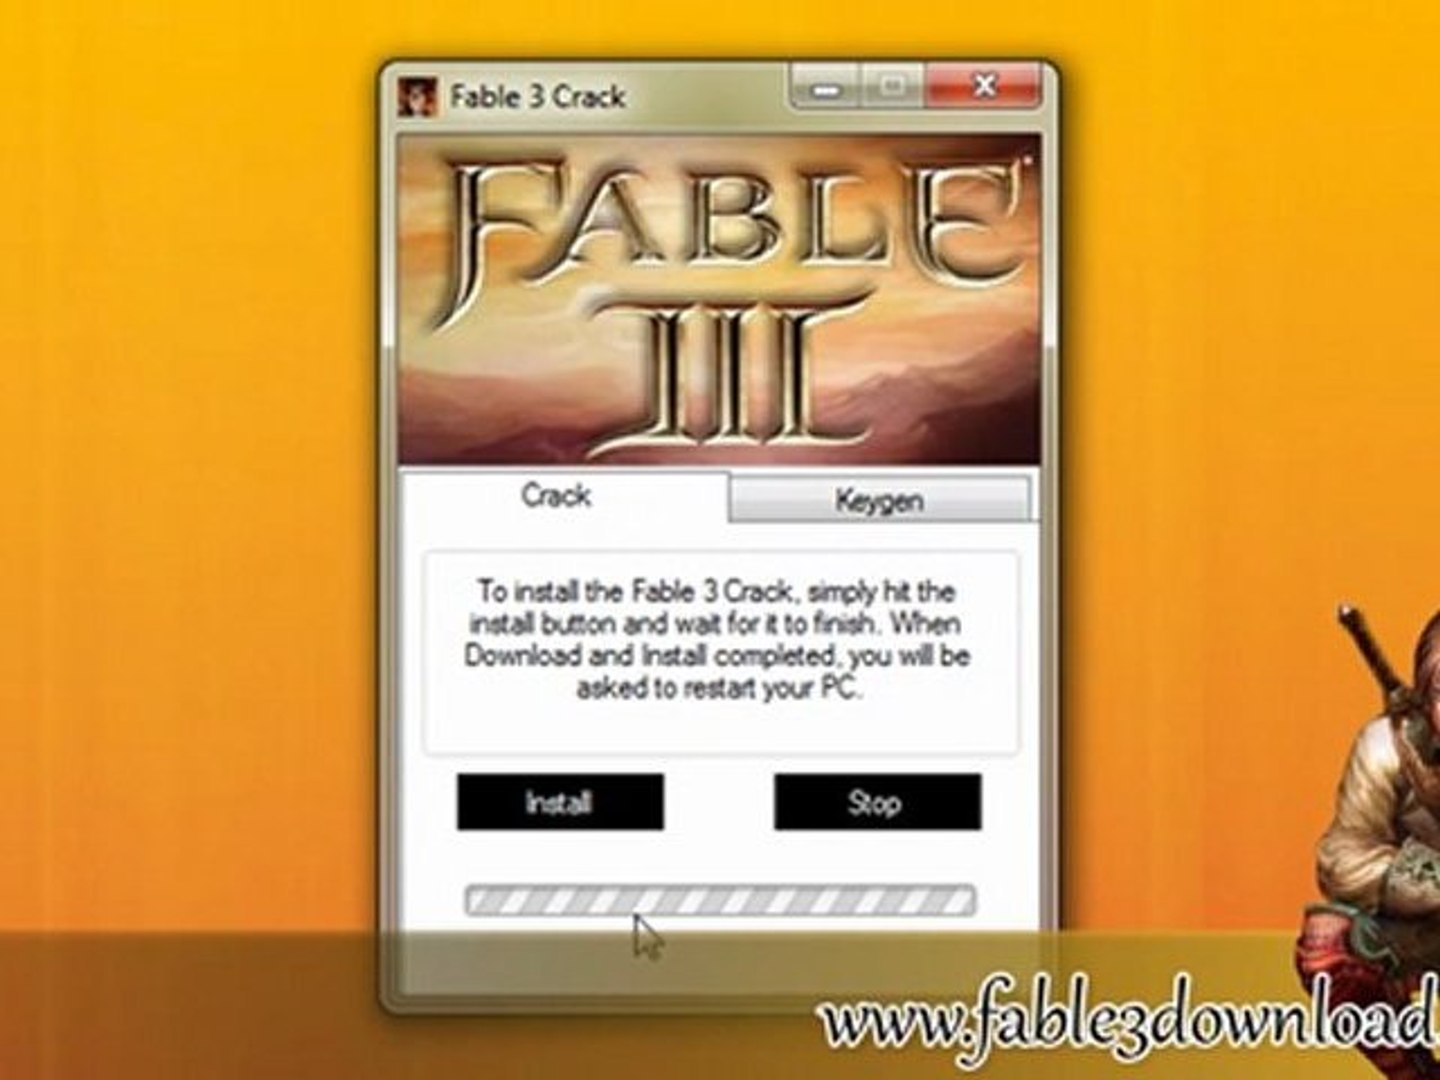 Fable 3 PC Crack Free Download Tutorial